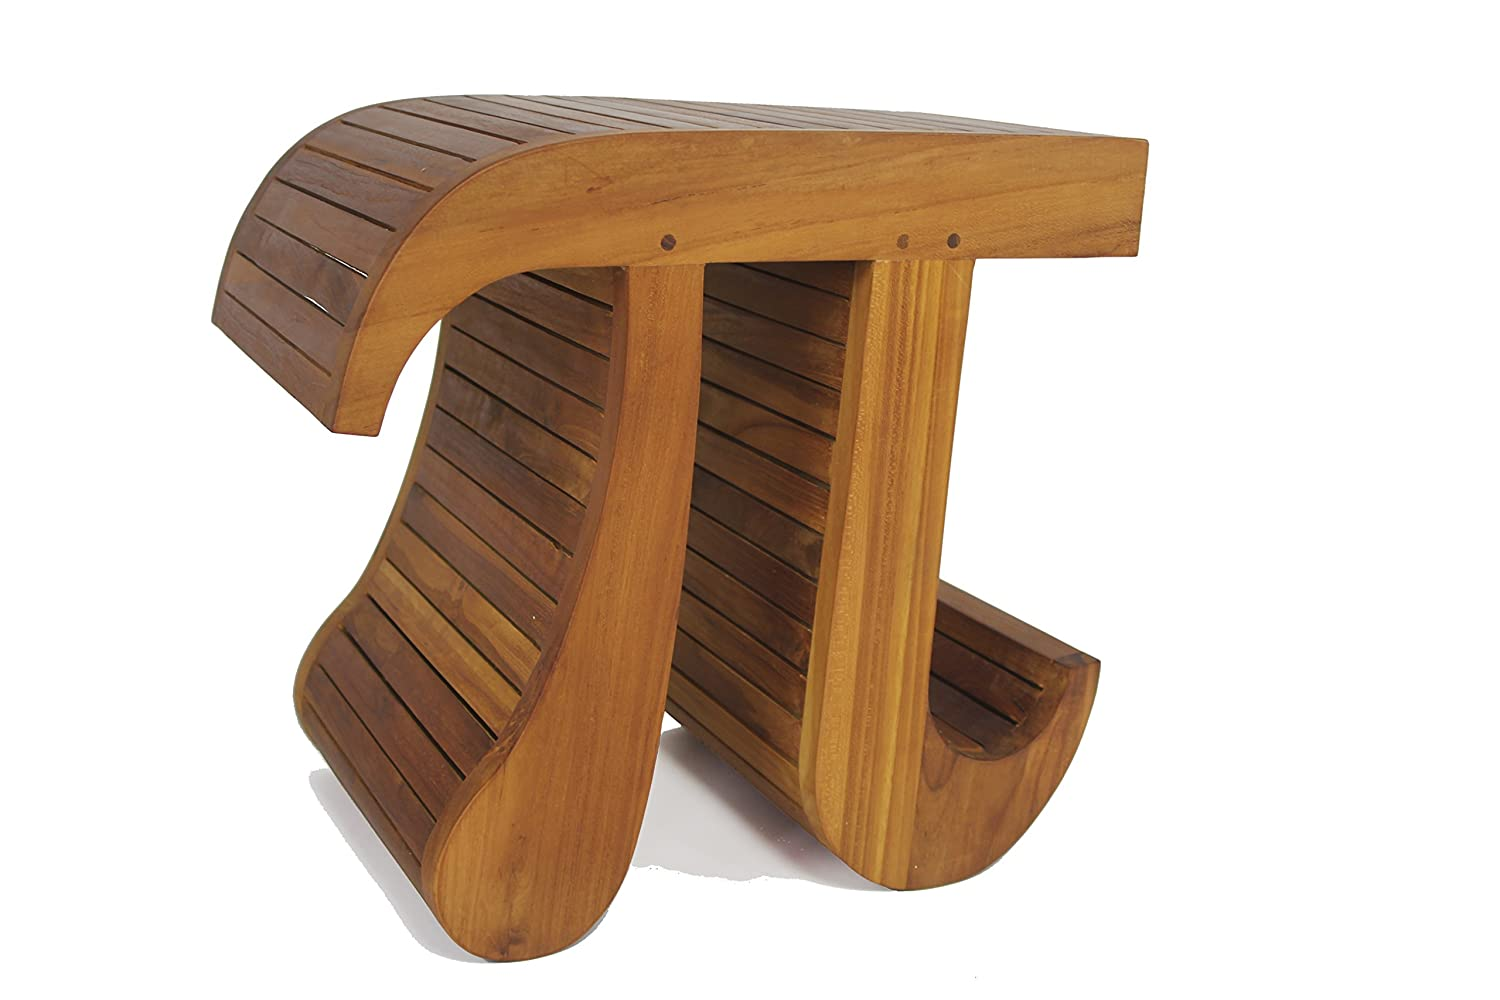 Amazon.com: Pi Stool: Home & Kitchen